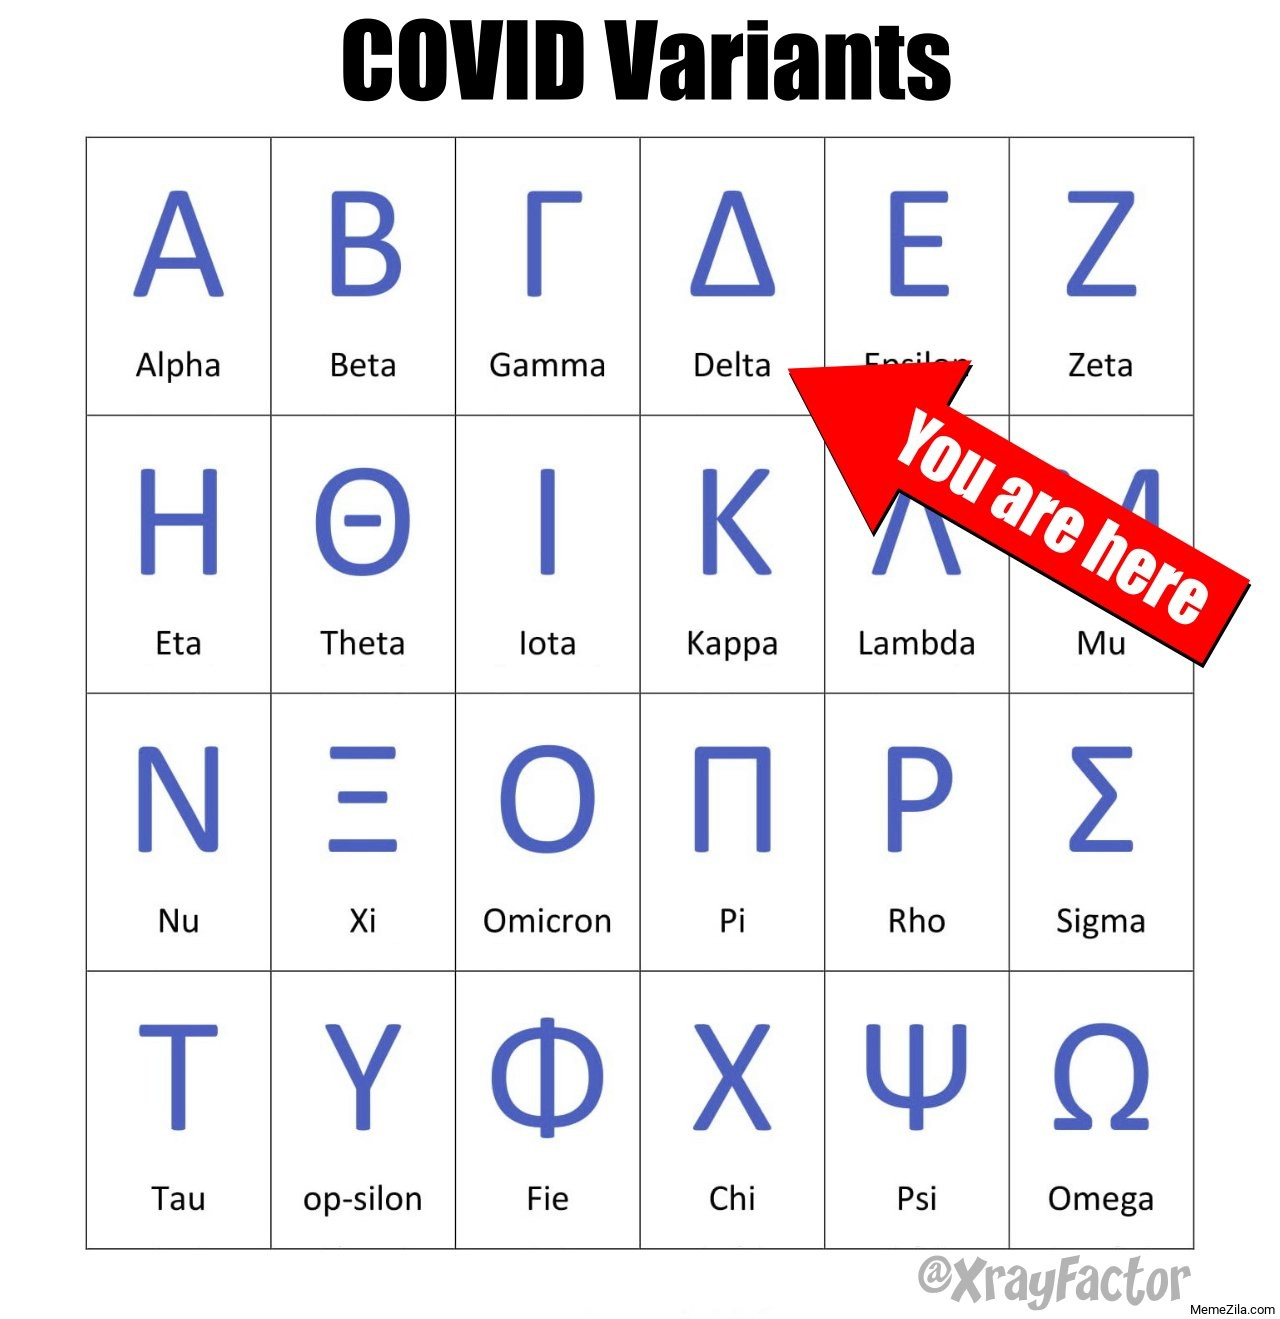 Covid Variants Delta You are here meme